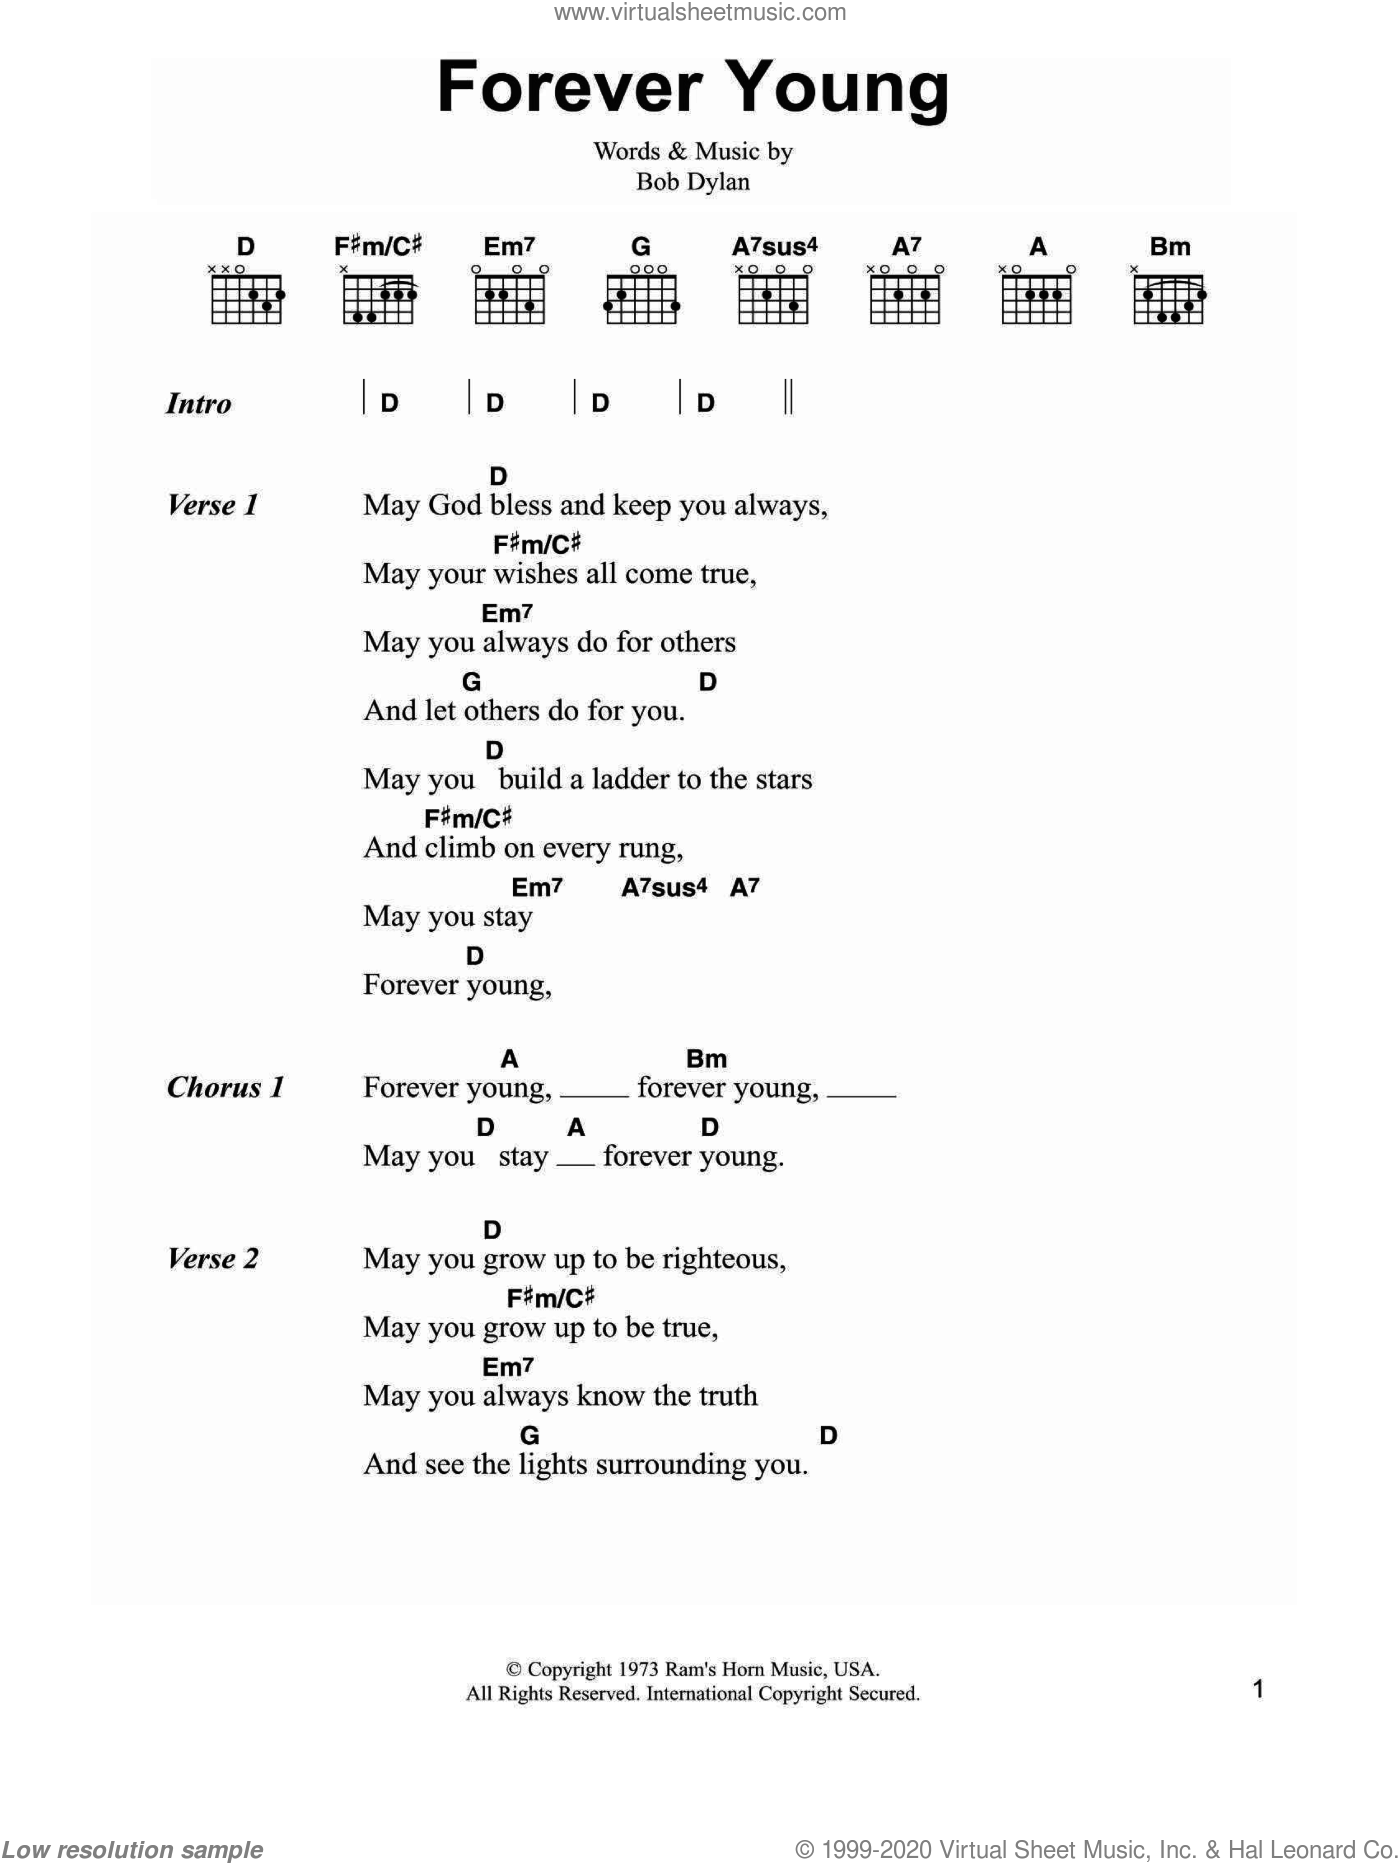 Dylan   Forever Young sheet music for guitar chords [PDF]